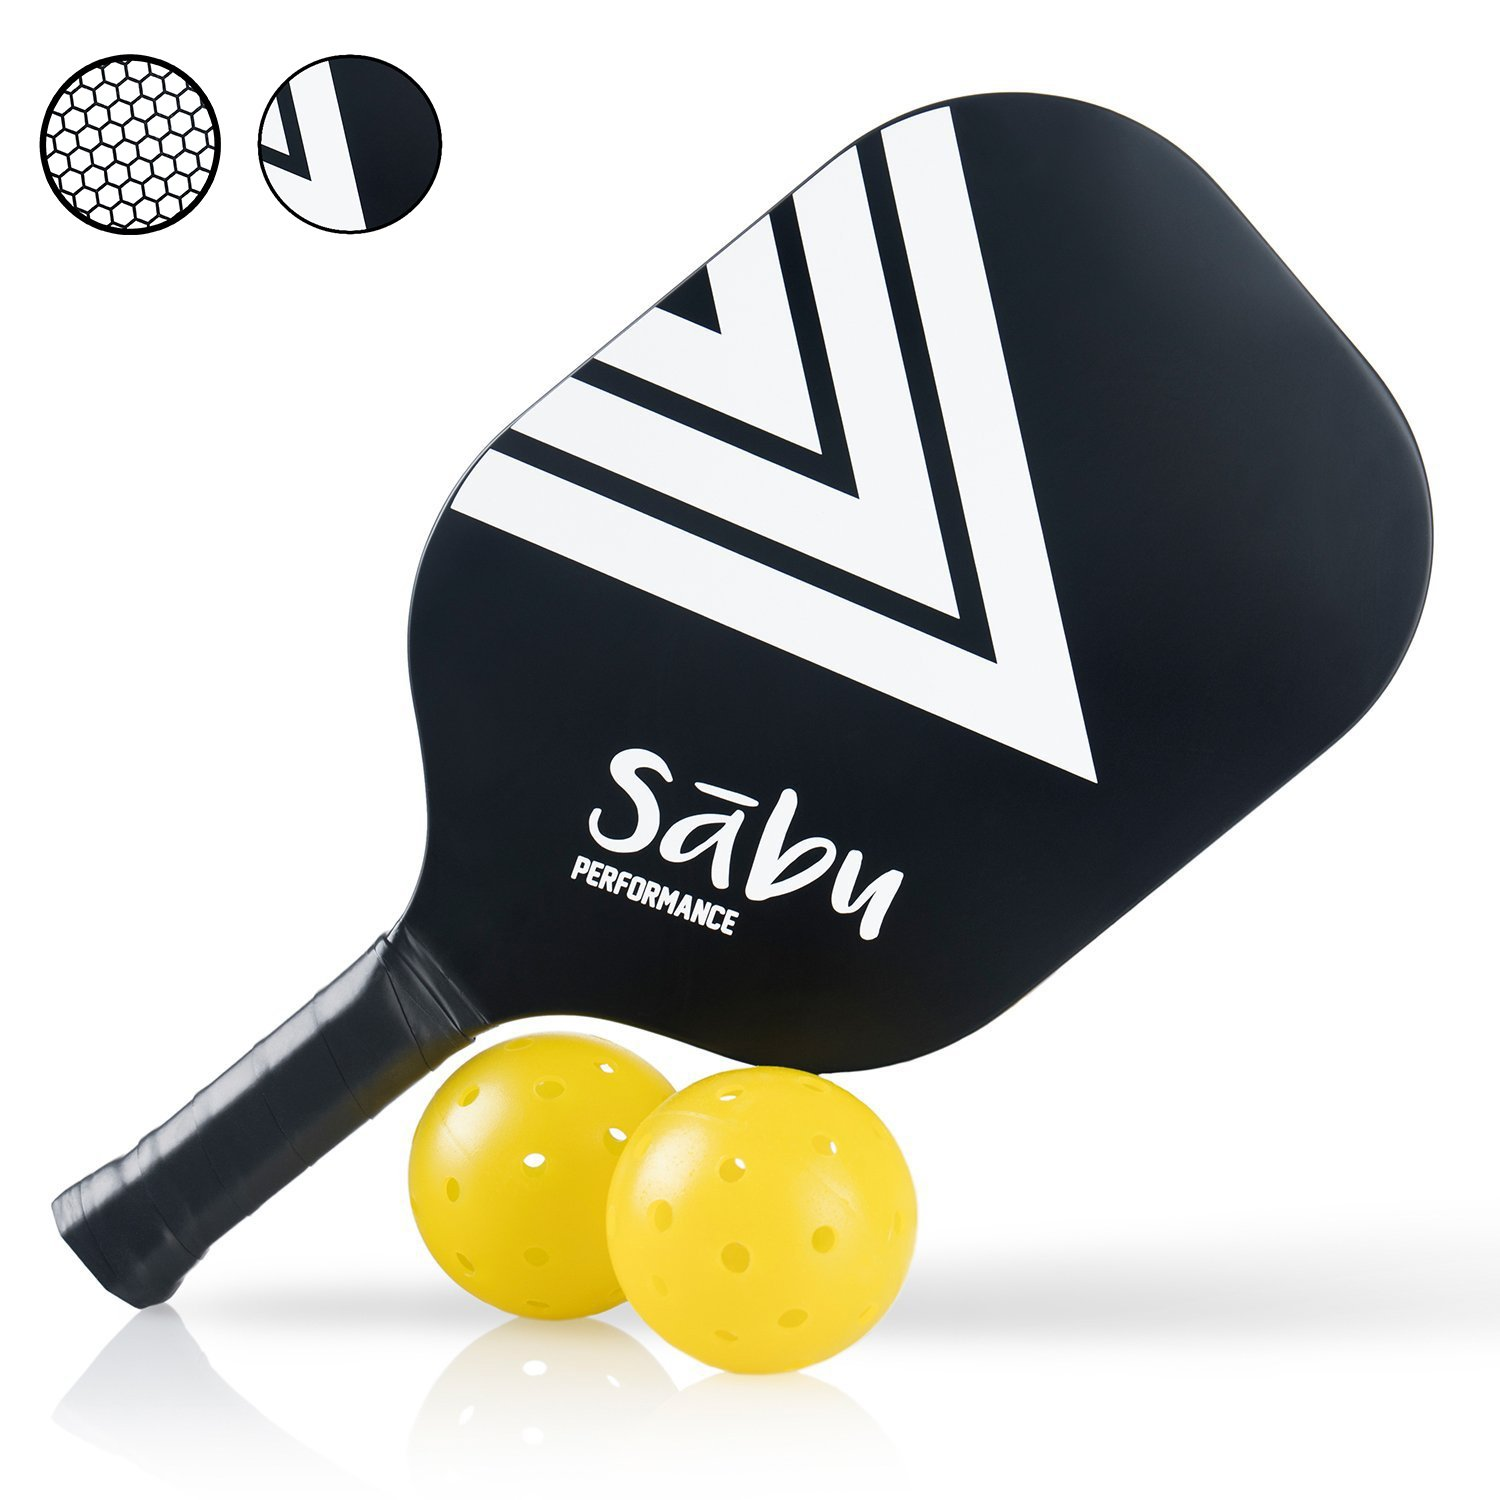 PickleBall Composite Paddle by Sabu: Performance Series - Best for intermediate or Beginners, Indoor or Outdoor Bonus Gift - 2 Balls Included in package Sabu Sports